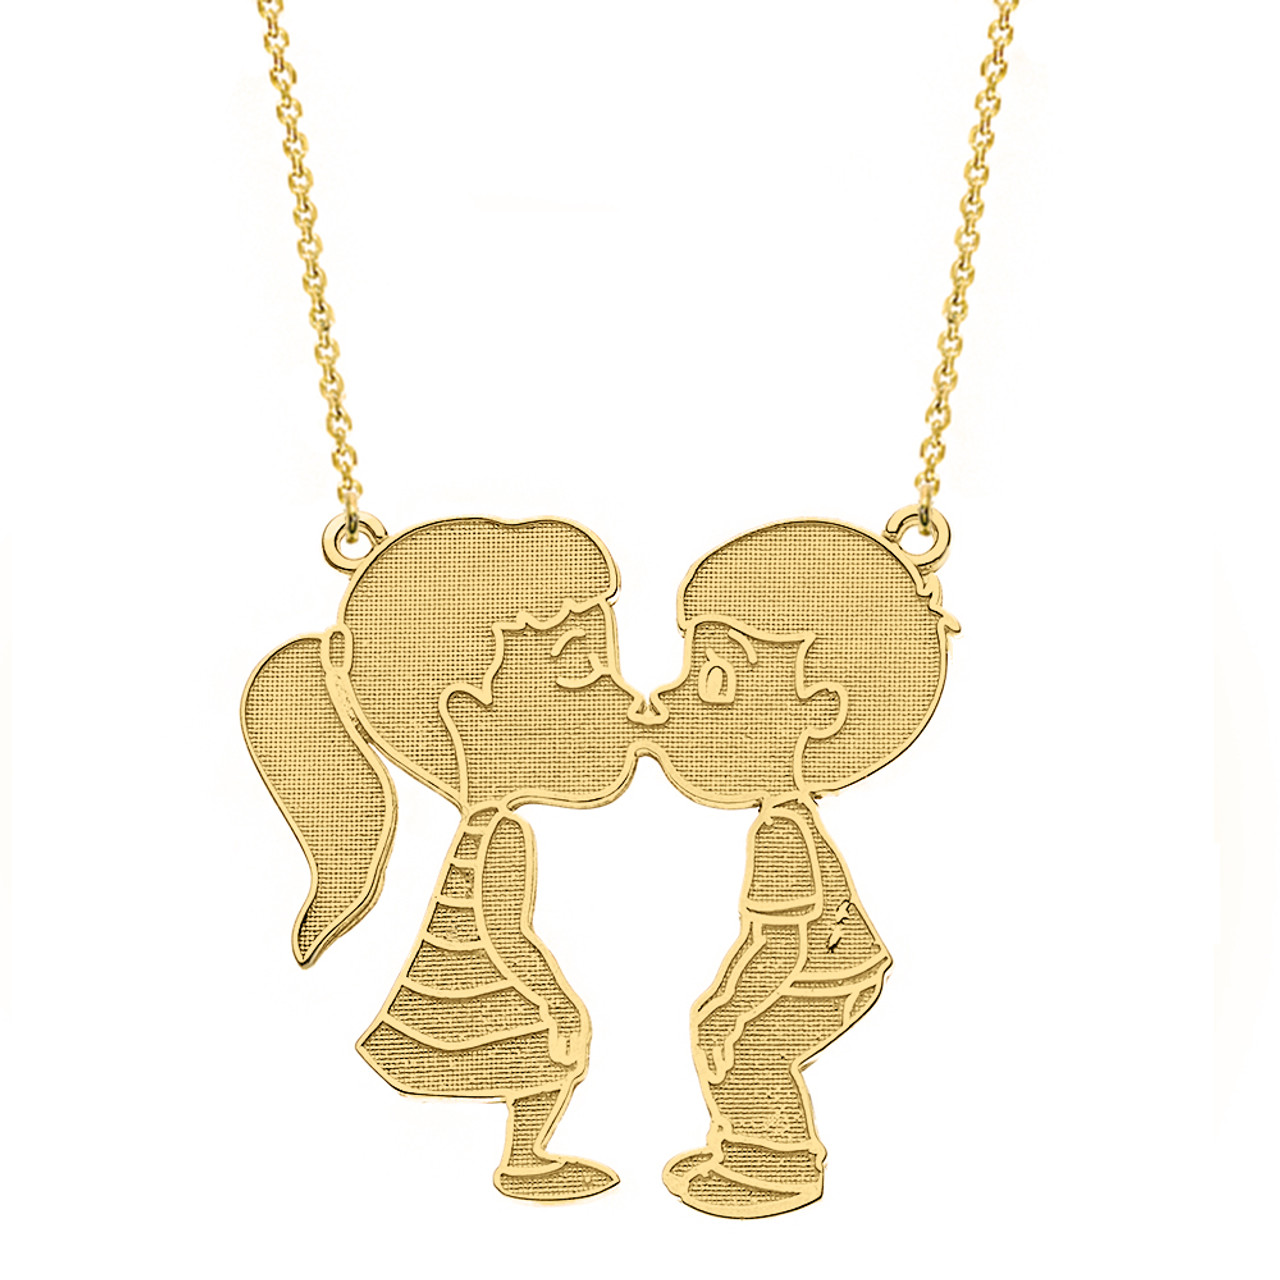 ffb84b95a18f8 14k Solid Yellow Gold Boy Girl Kissing Lovers Necklace